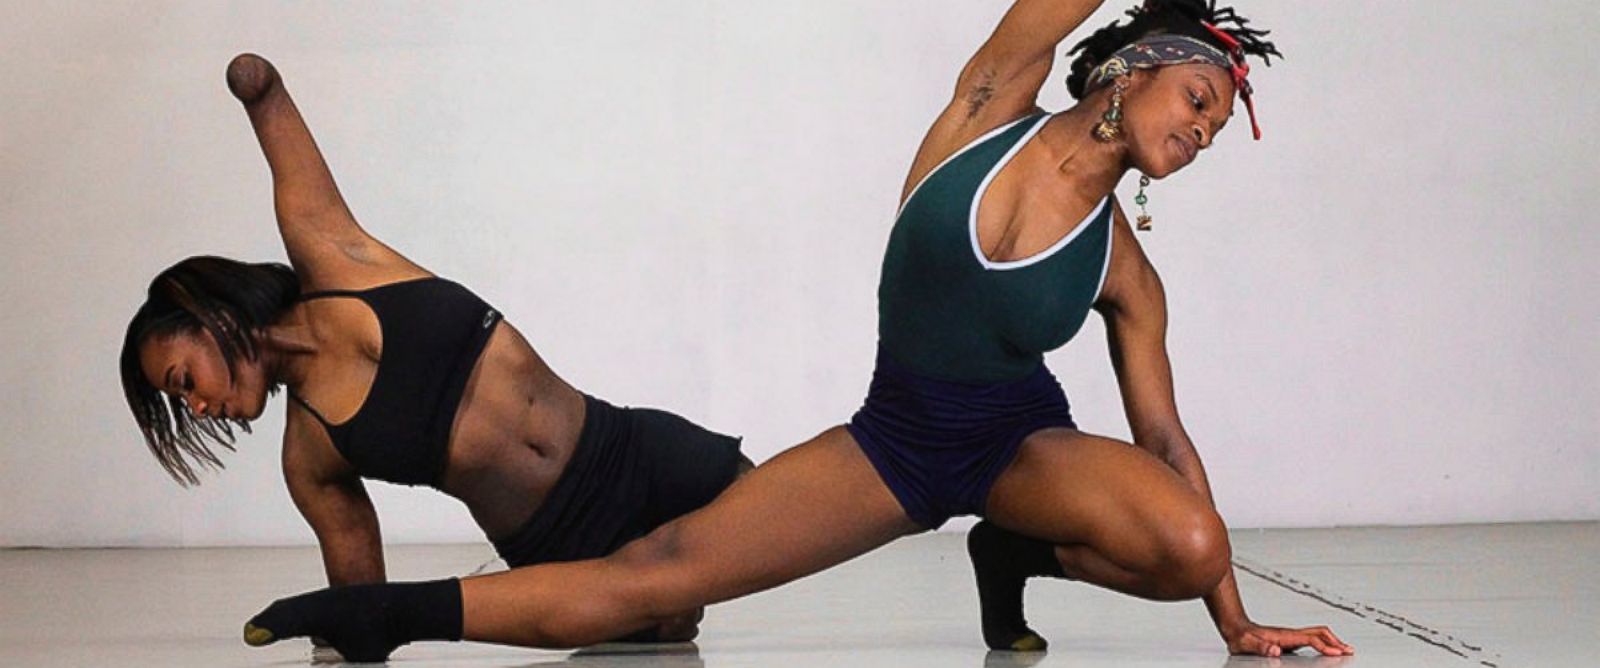 Uriah Boyd and Kiera Brinkley performed together during a dance performance in Portland, Oregon.